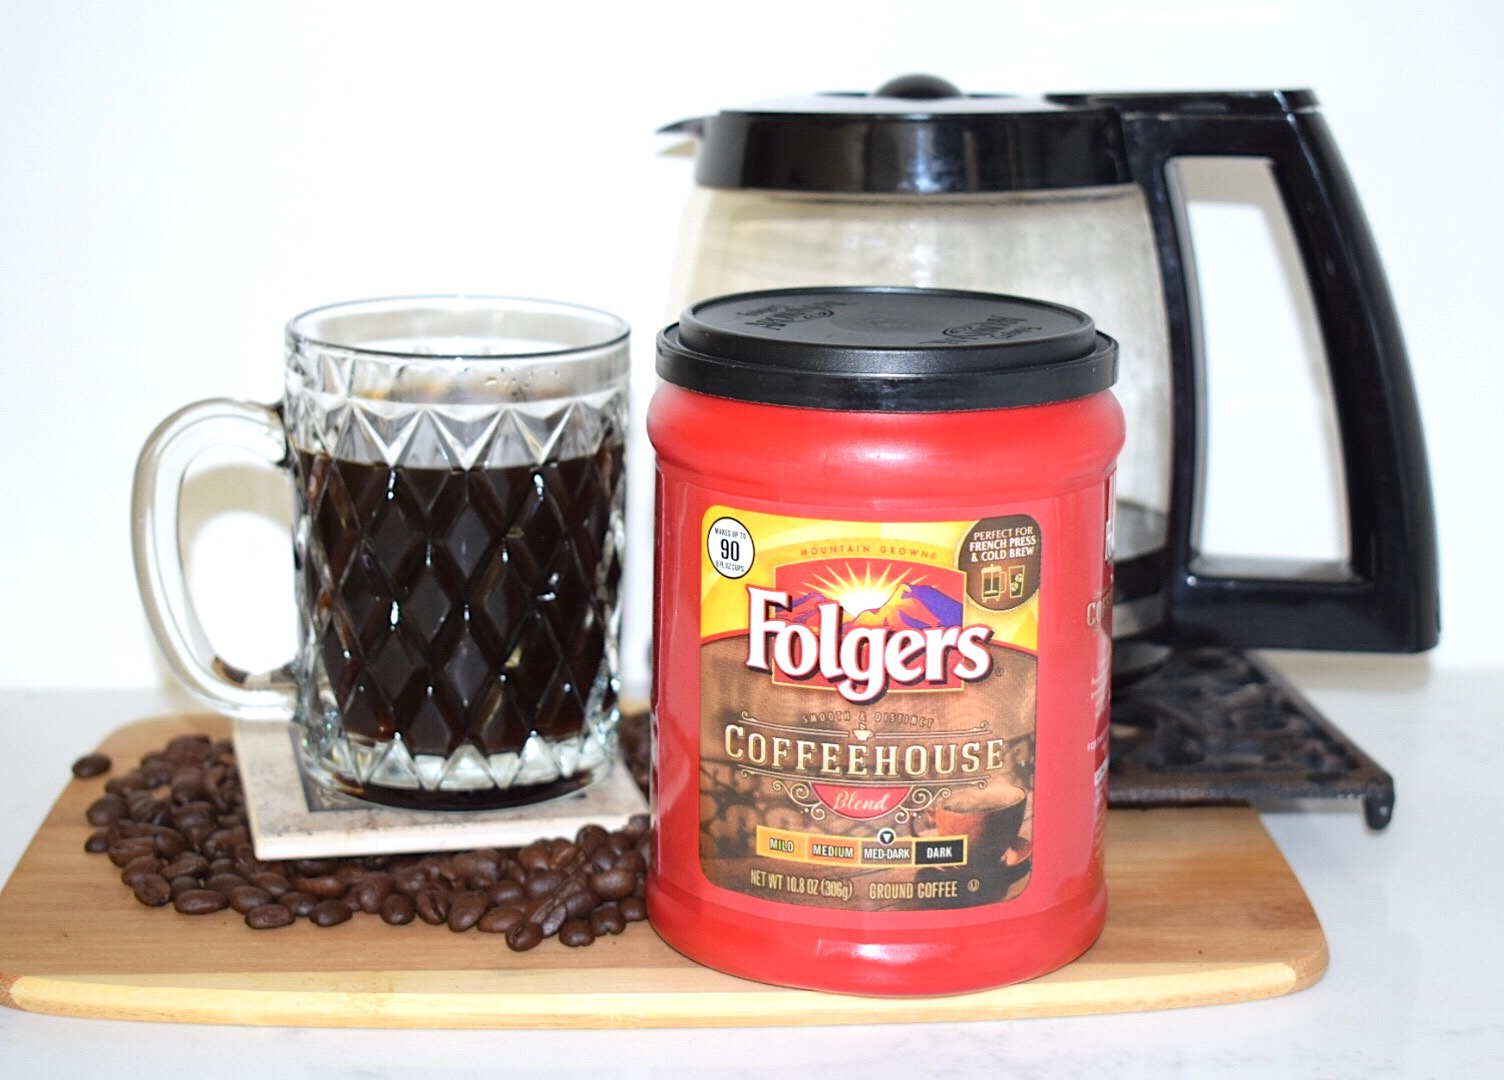 Folgers Coffeehouse Chocolate Coffee Protein Smoothie